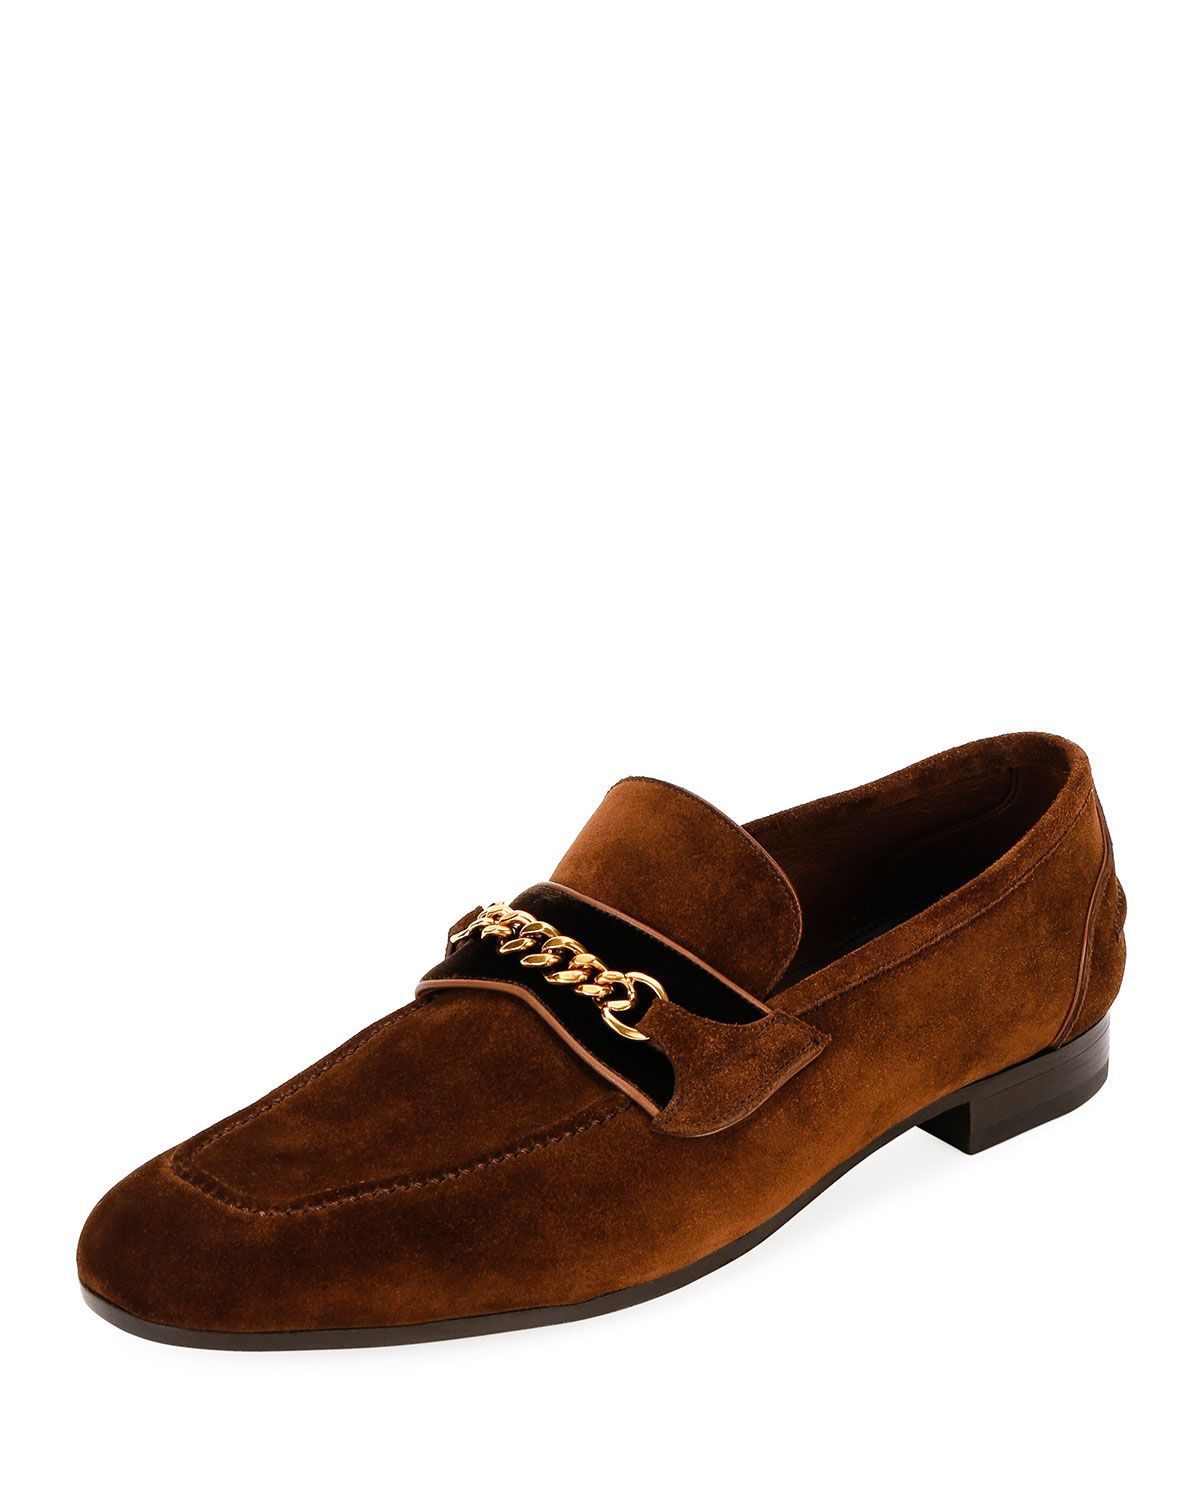 8959fca4ed4 TOM FORD MEN S FORMAL LOAFERS WITH CHAIN.  tomford  shoes